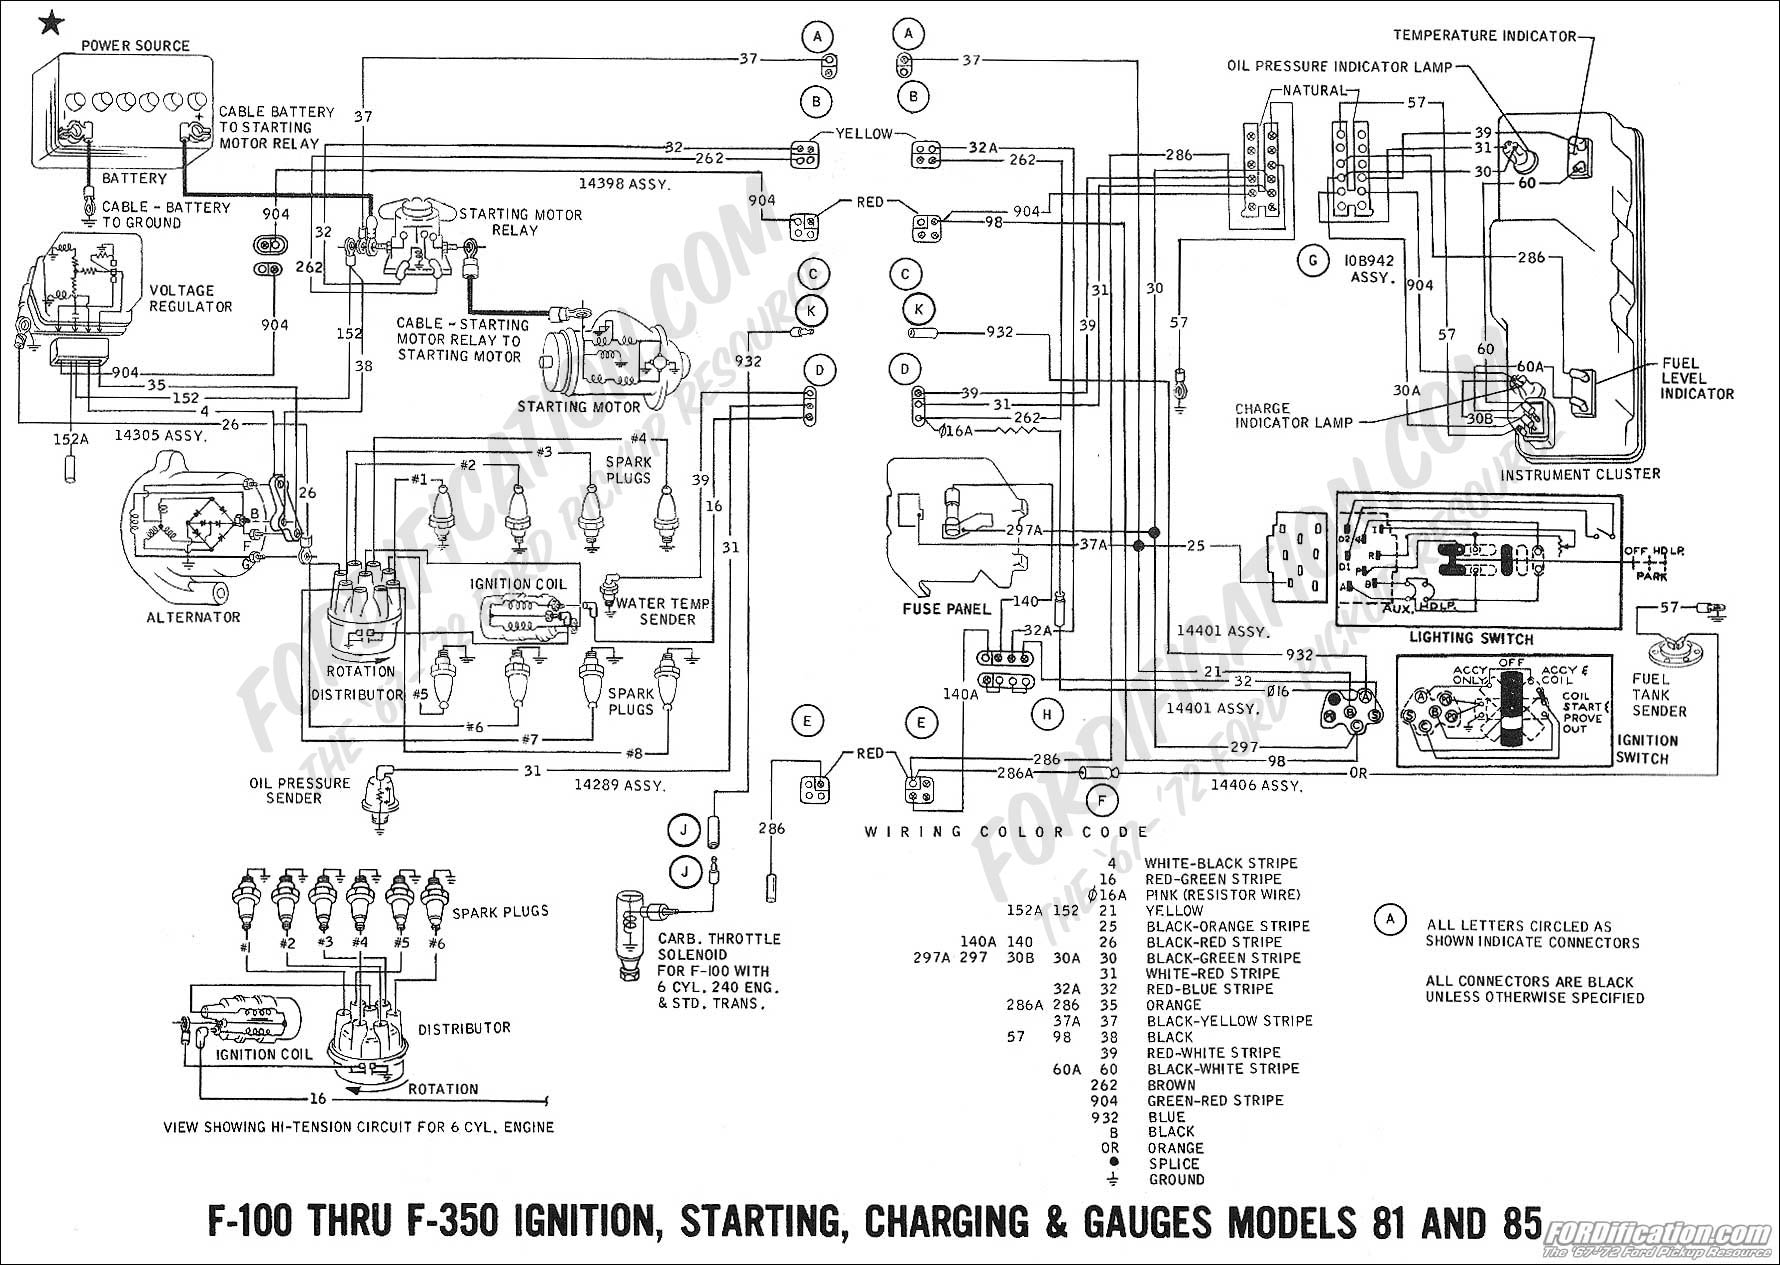 hight resolution of ford f500 wiring diagram wiring diagram third level free ford tractor diagrams free ford wiring diagrams 1988